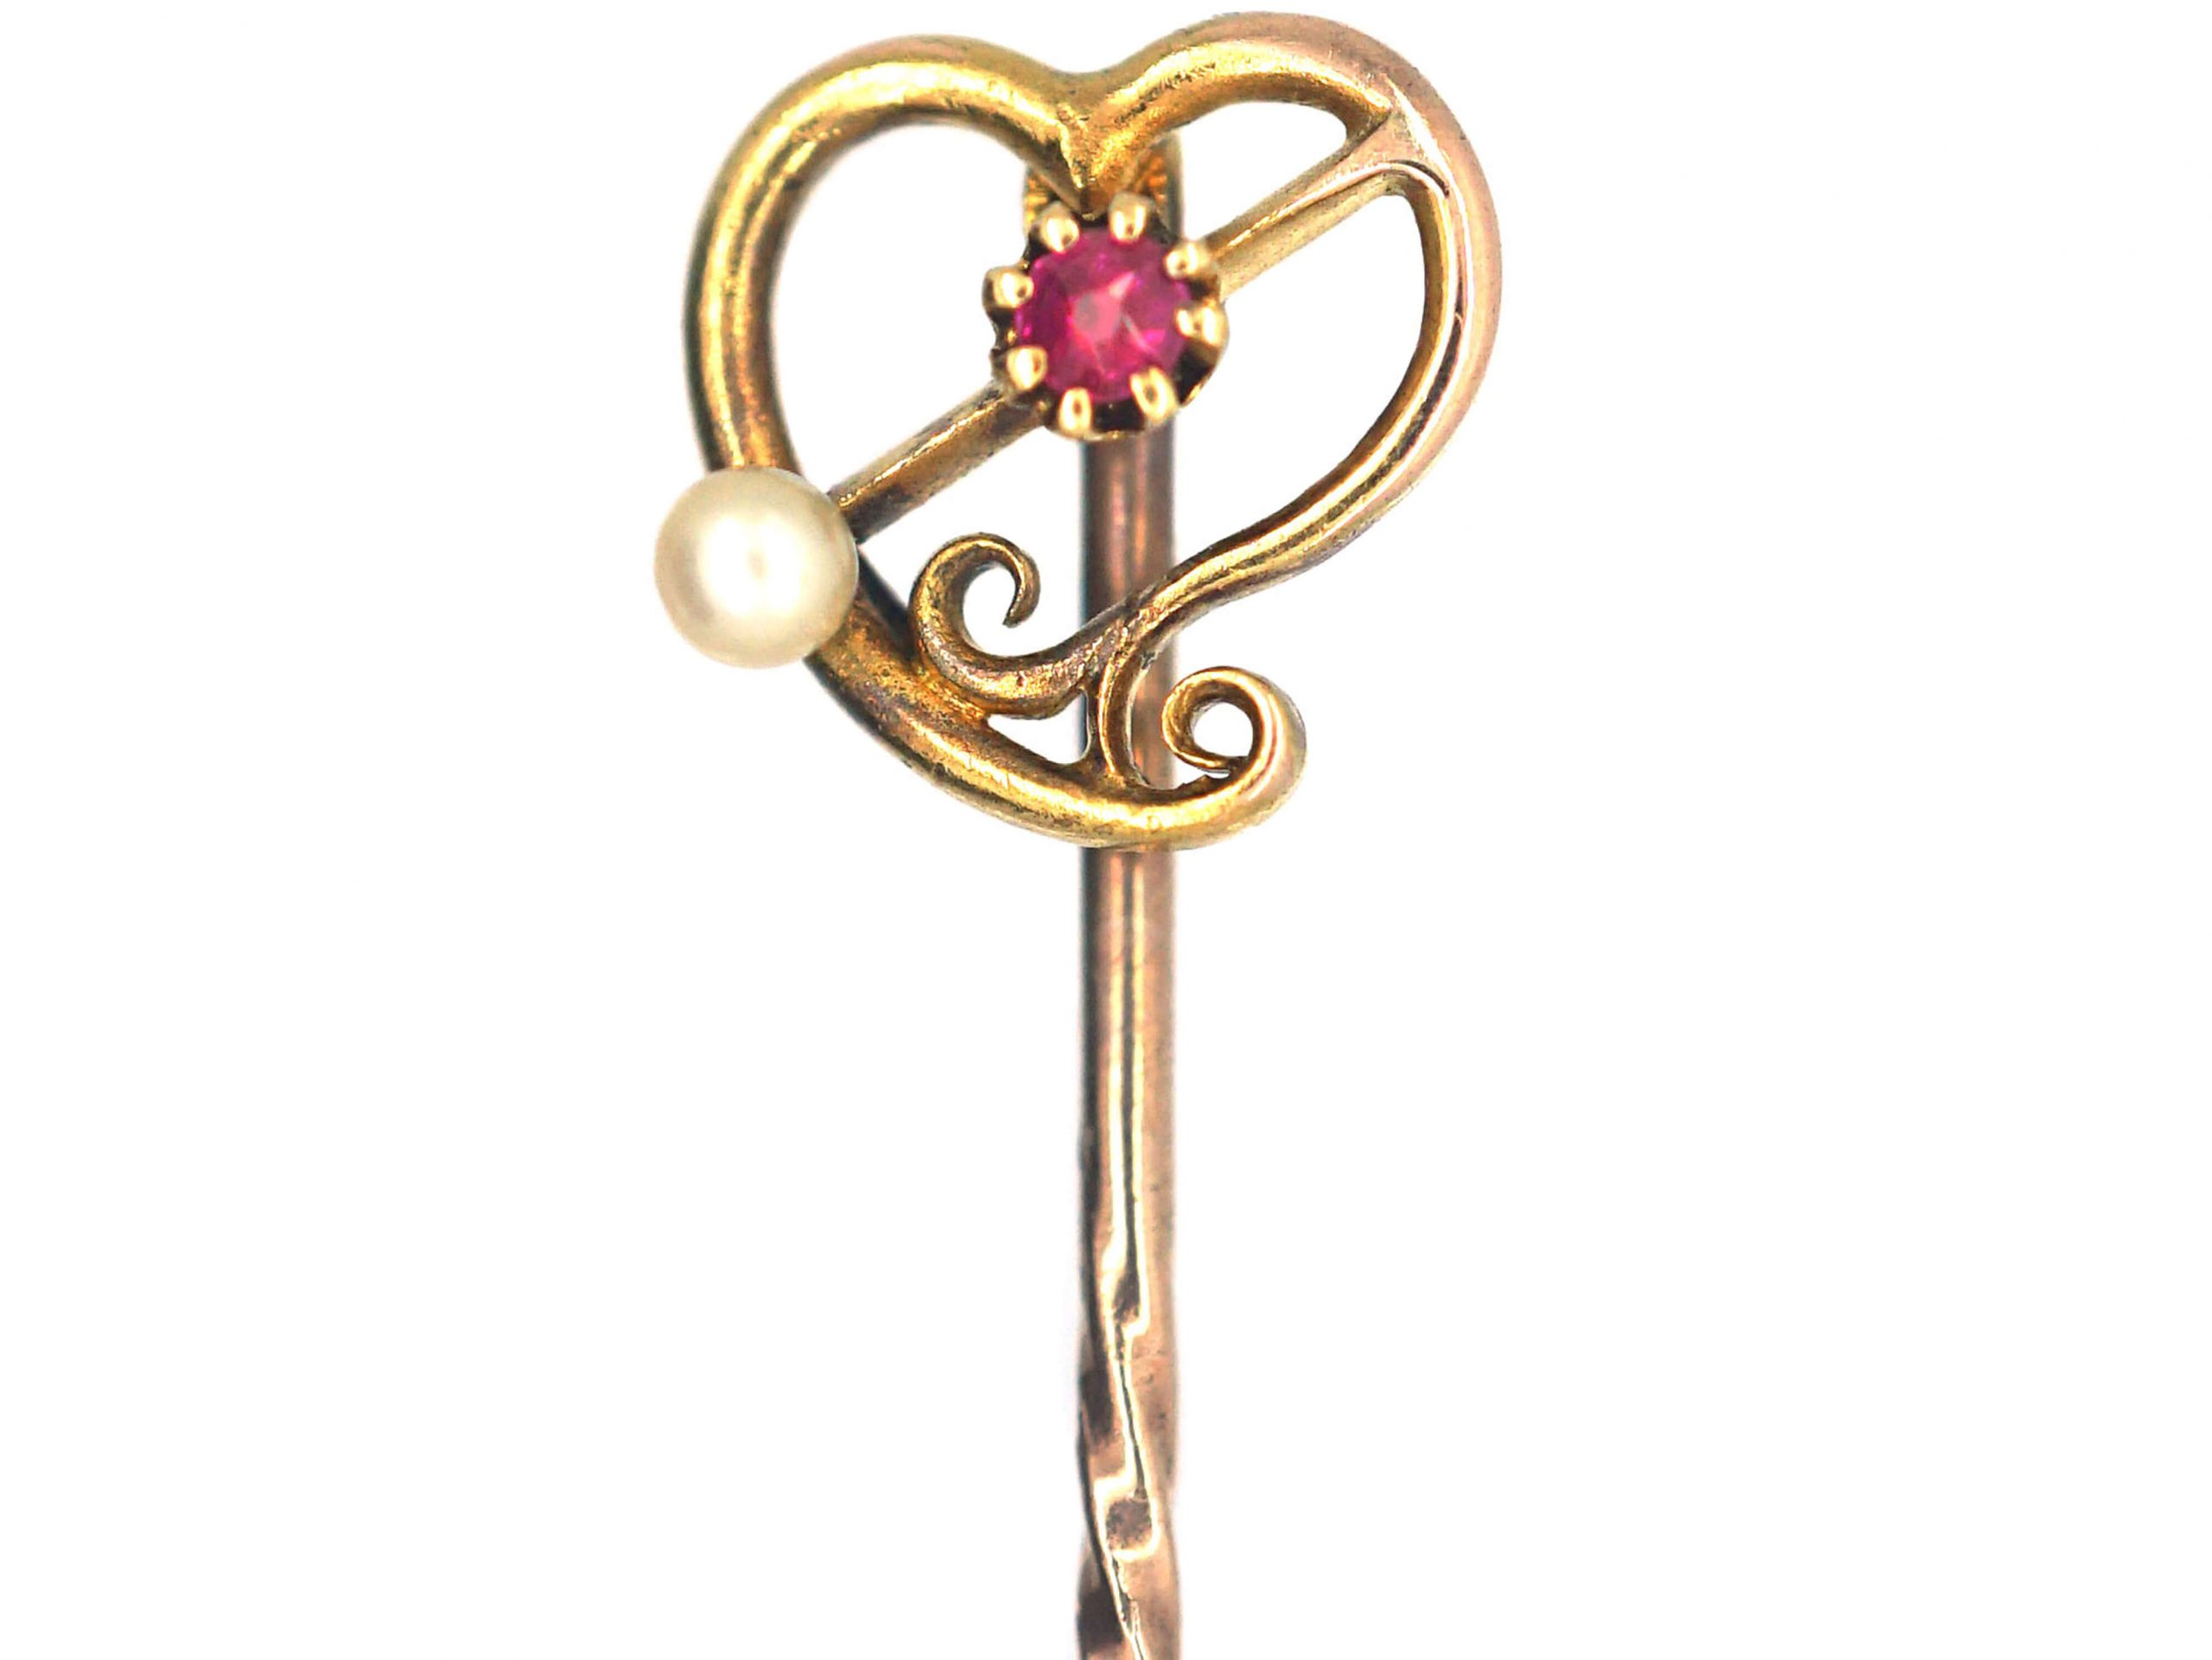 Edwardian 15ct Gold Weeping Heart Tie Pin set with a Ruby & a Natural Pearl